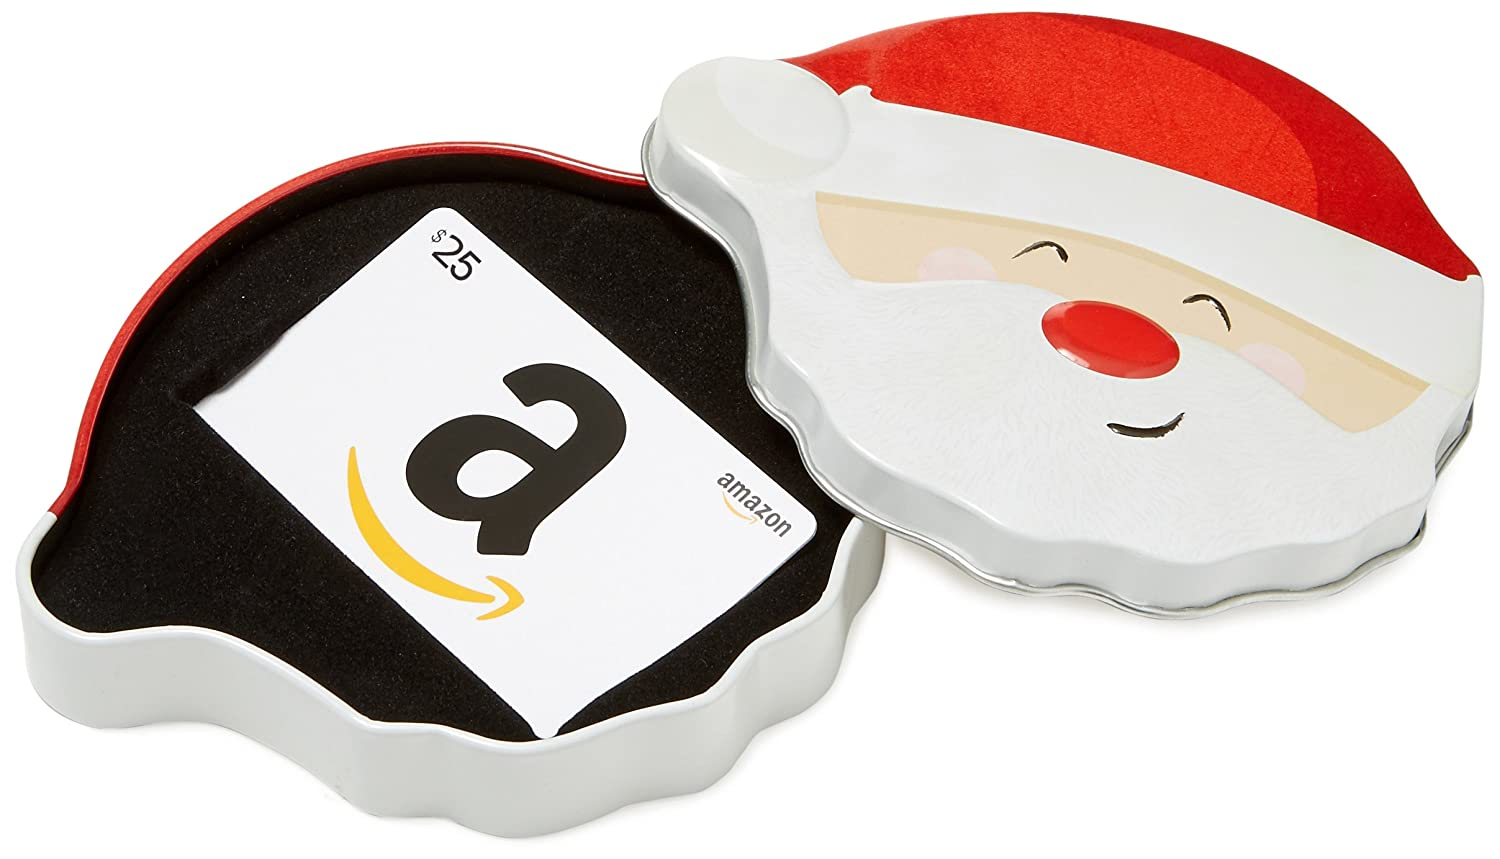 Amazon.ca Gift Card in a Santa Smile Tin (Classic White Card Design)